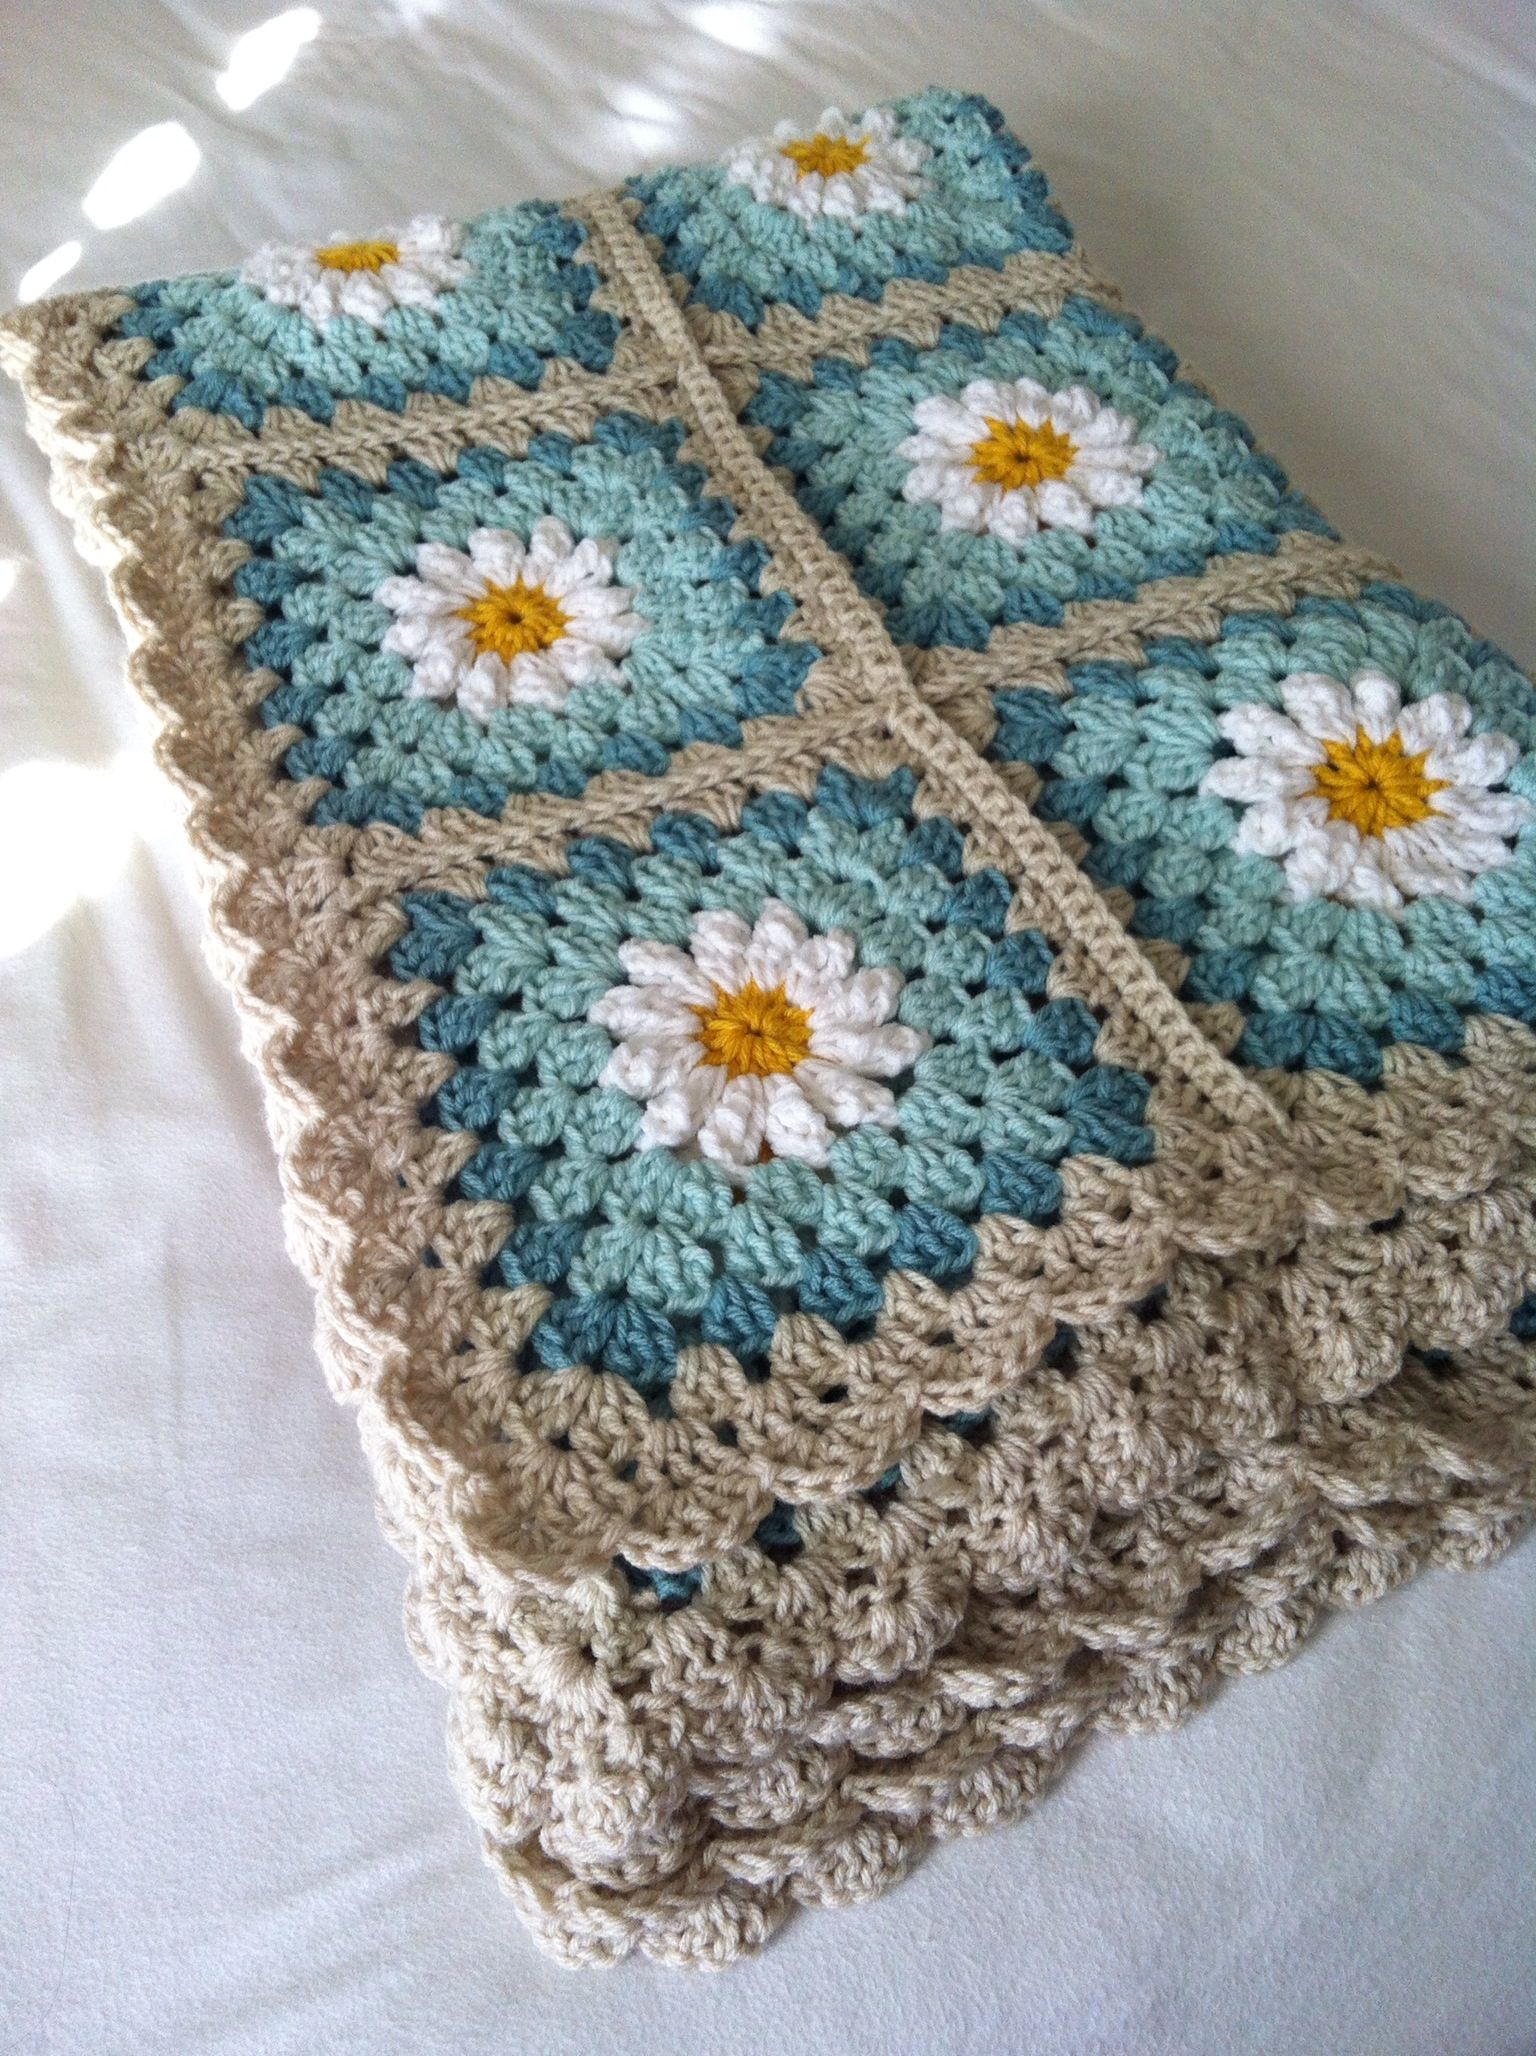 Knitting Granny Square Blanket : Granny square love daisies crochet blankets and